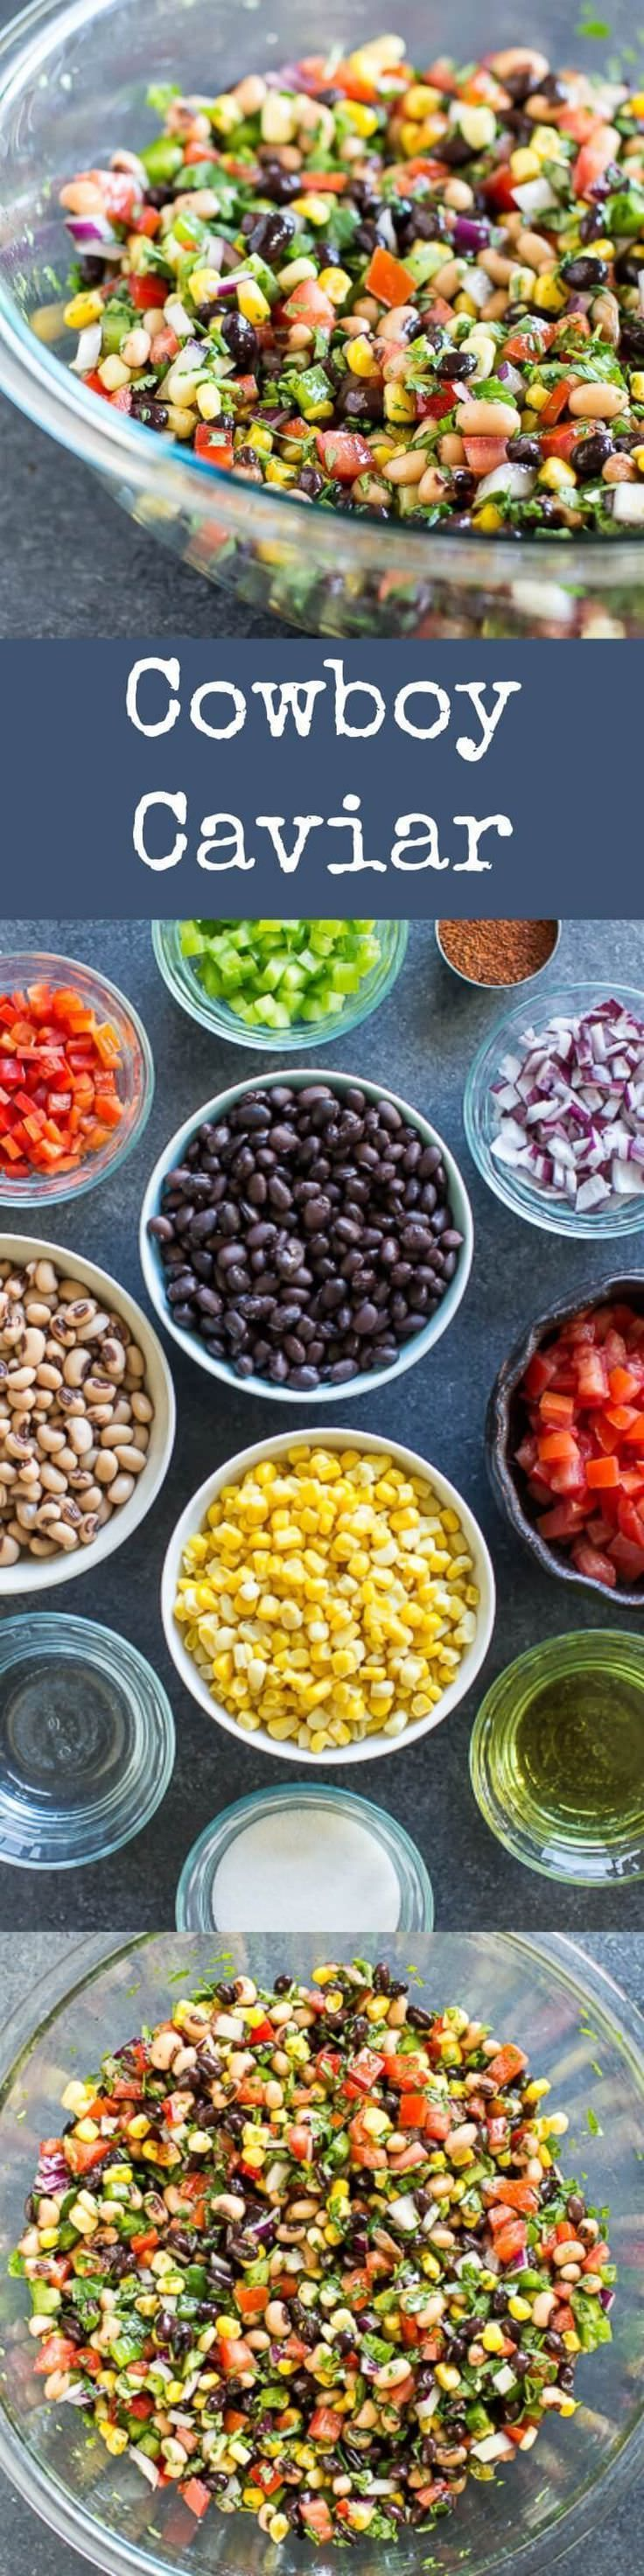 Chopped bell peppers, cilantro, beans, sweet corn and lots of super healthy and natural ingredients. The cowboy caviar recipe is easy to make, vegan and delicious.